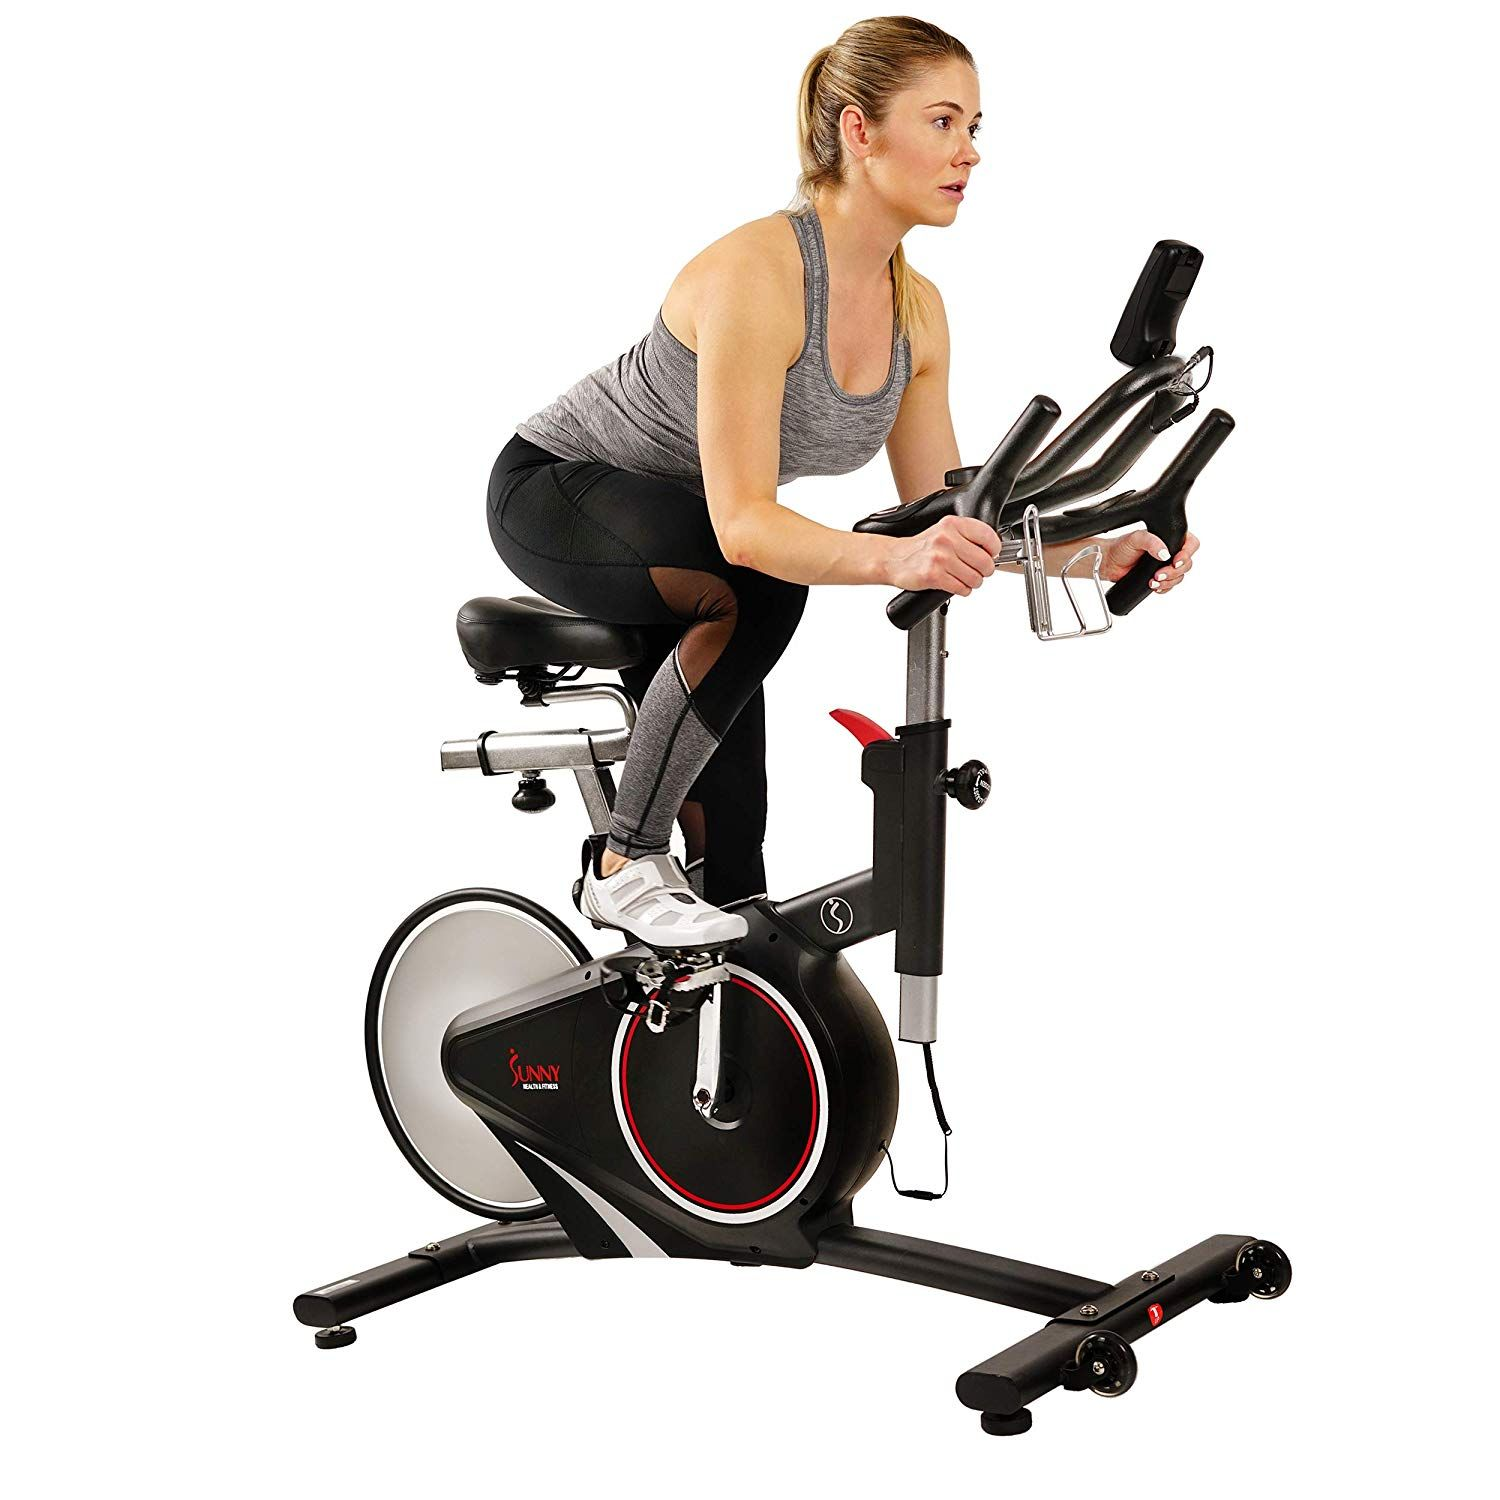 Sunny Health Fitness Magnetic Belt Rear Drive Indoor Cycling Bike High Weight Capacity With Rpm Cadence Sensor Pulse Rate Monitor Sf B1709 In 2020 Indoor Cycling Bike Indoor Cycling Workout Belt